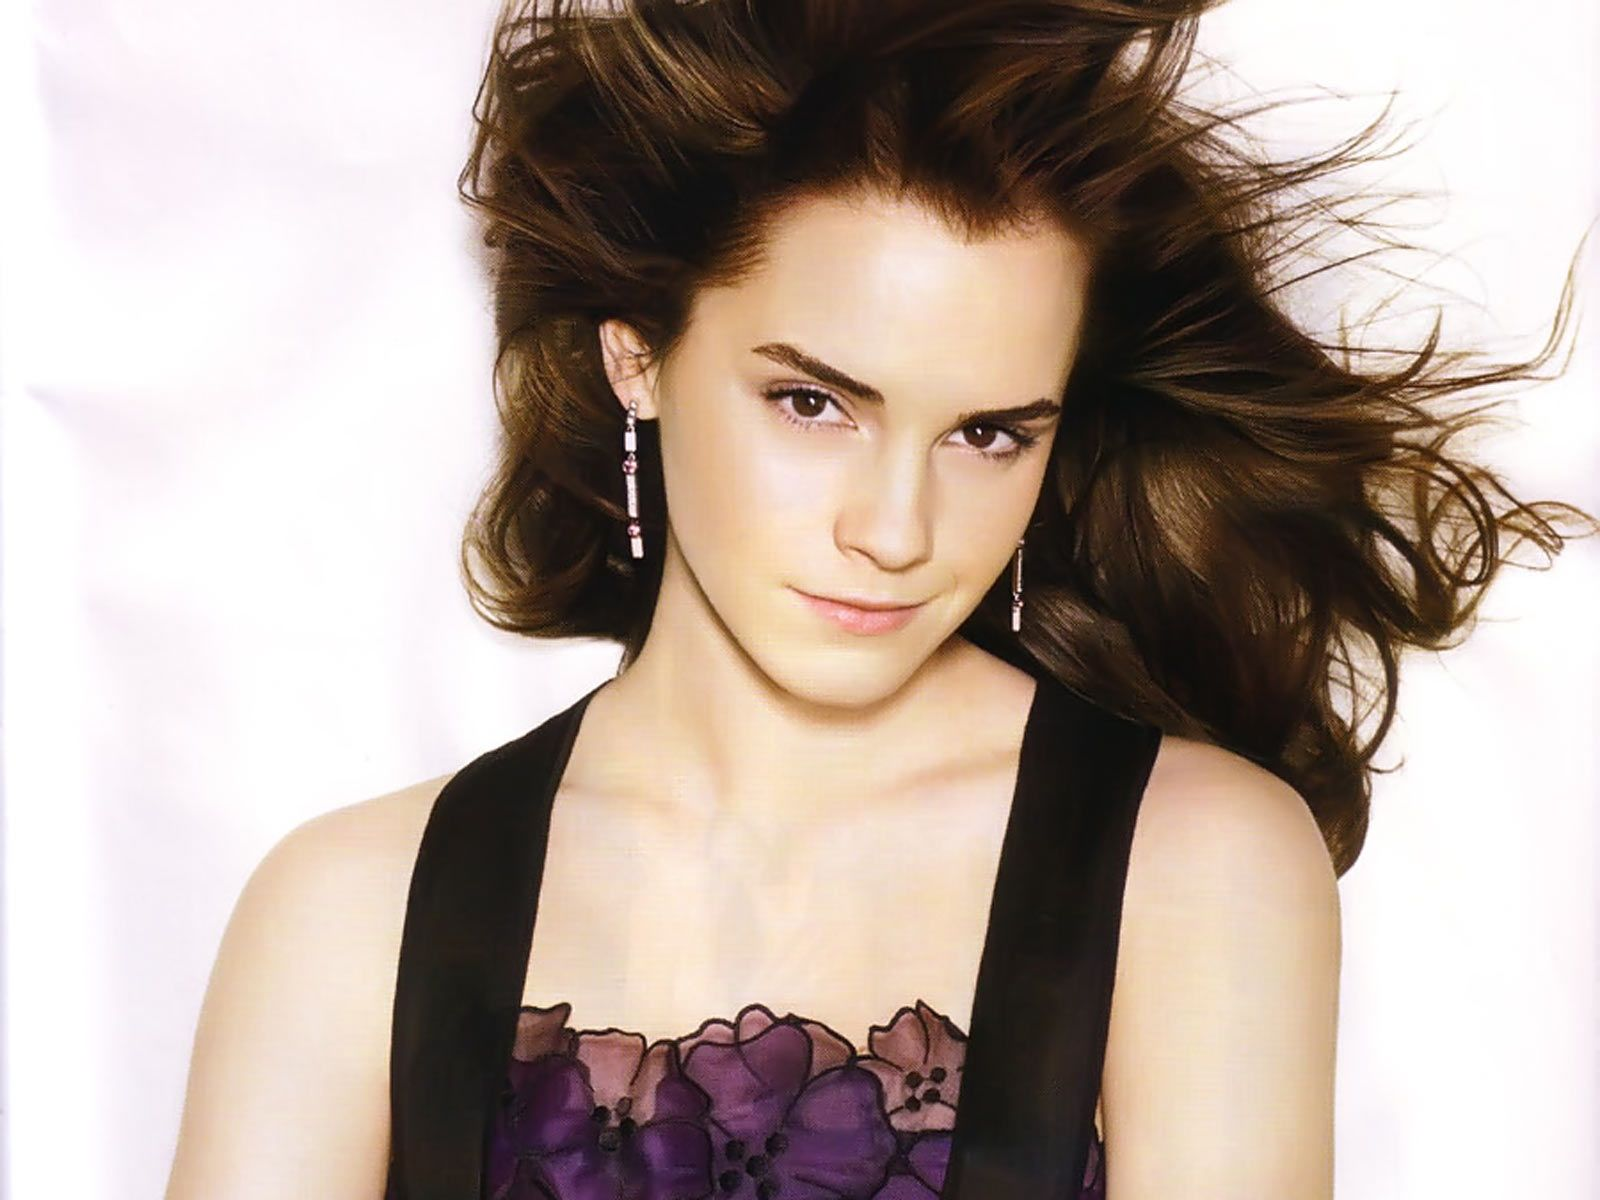 ... other wallpapers of Emma Watson Best Wallpapers as often as possible.